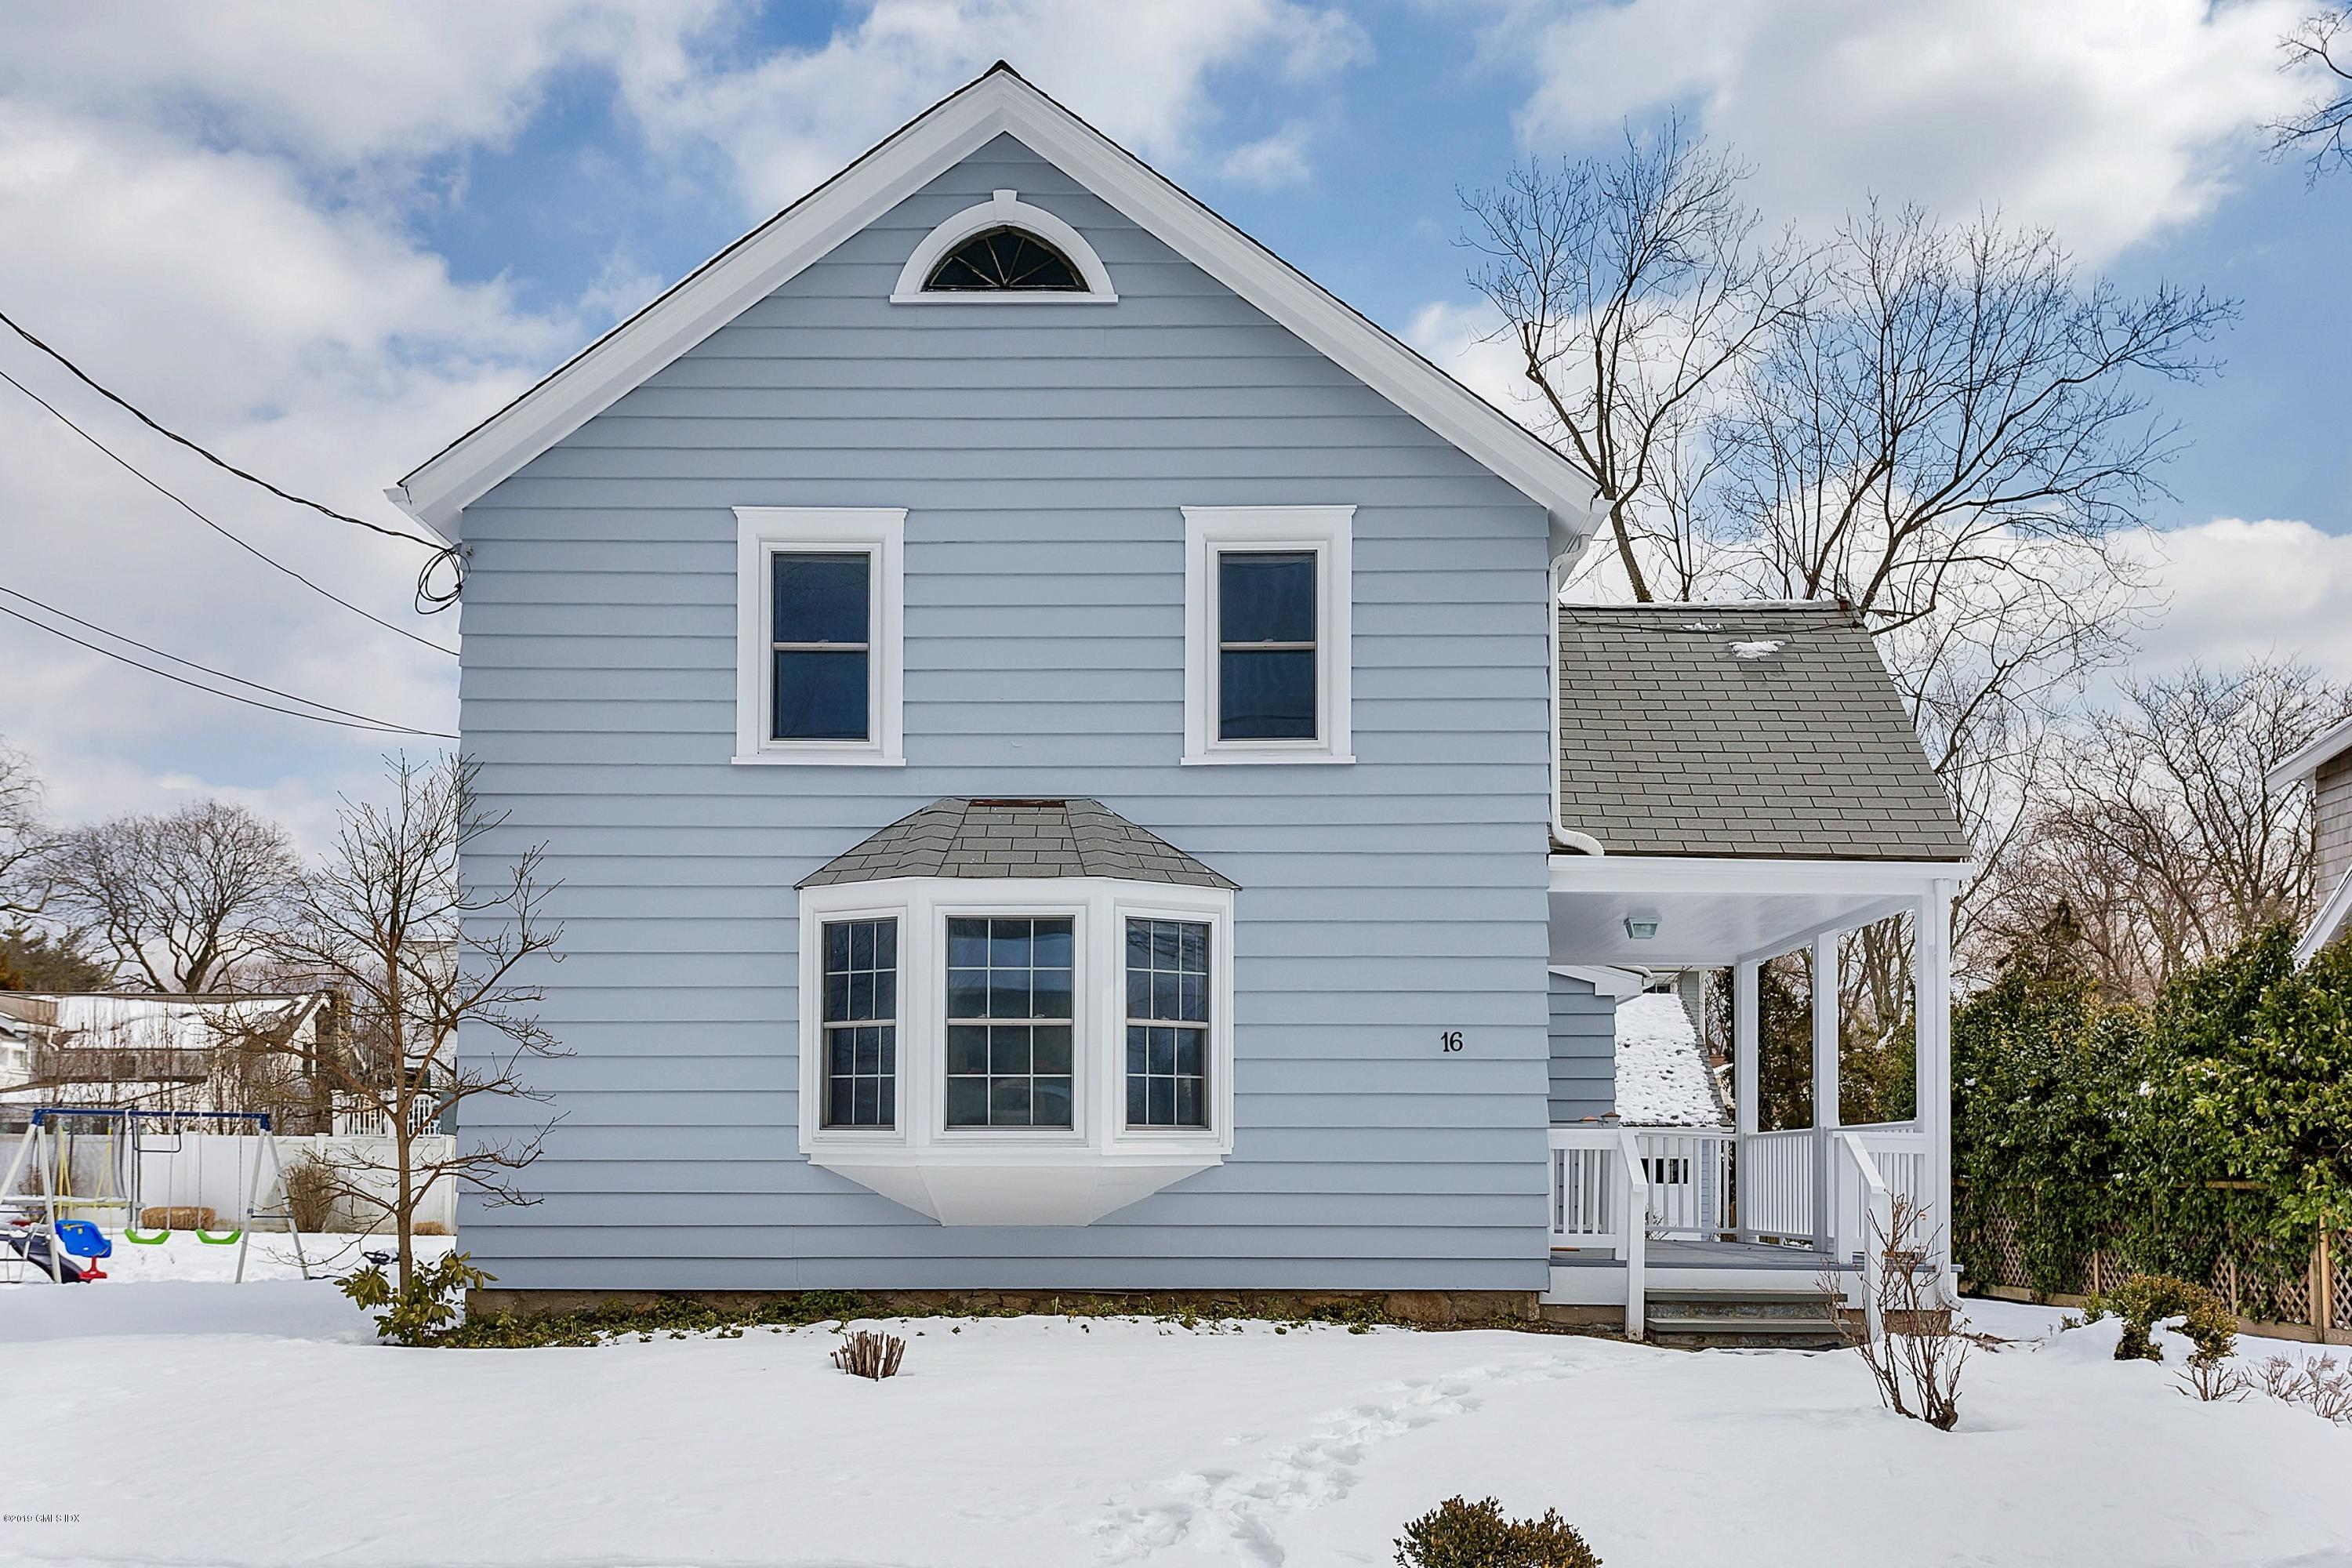 16 Heusted Drive,Old Greenwich,Connecticut 06870,3 Bedrooms Bedrooms,2 BathroomsBathrooms,Single family,Heusted,105810